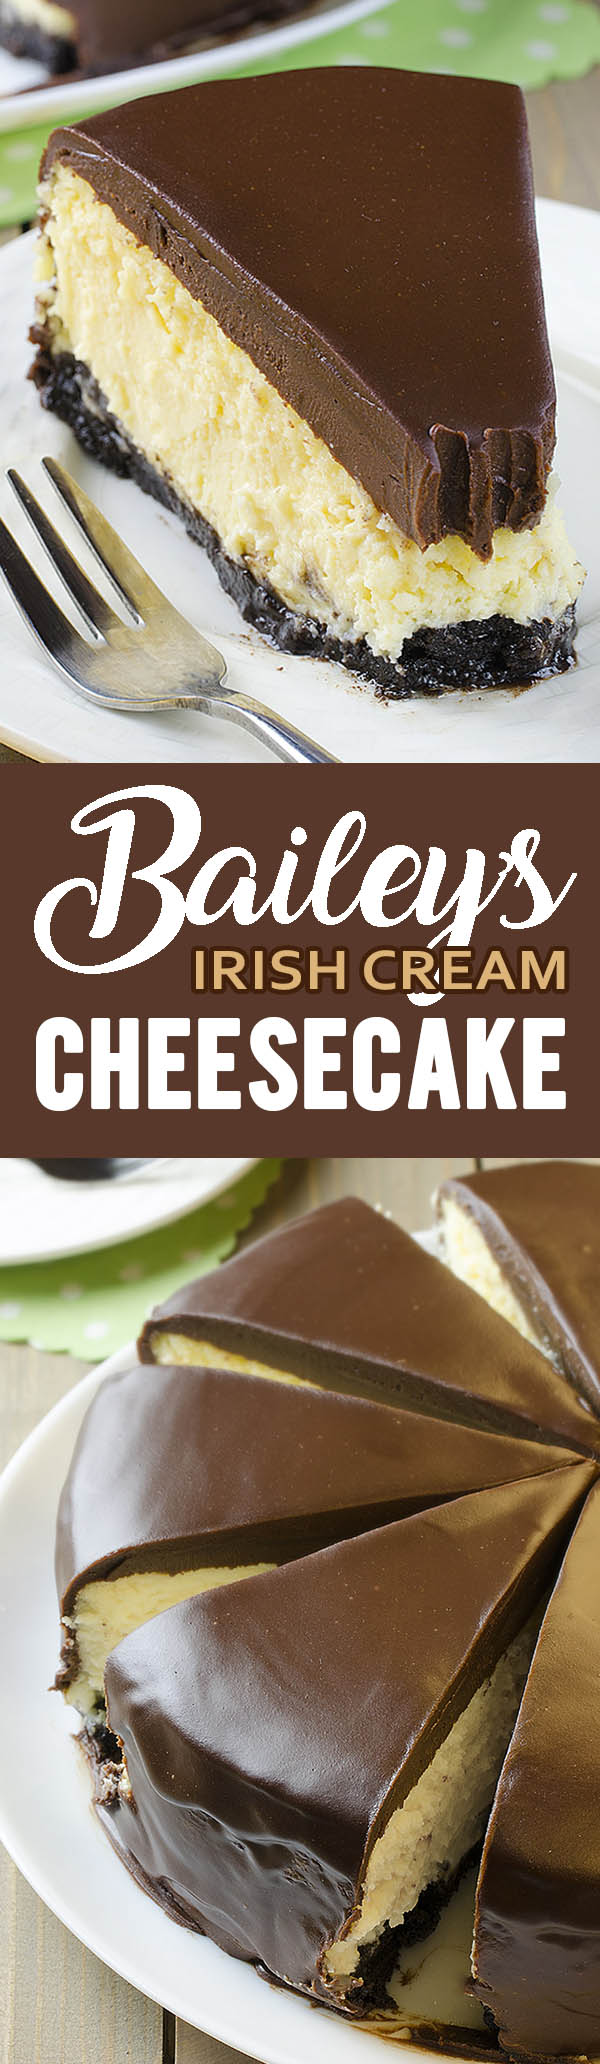 Serve festive Bailey's Irish Cream Cheesecake on St. Patrick's Day or for any festive occasion. This is a decadent, moist cheesecake that never fails.